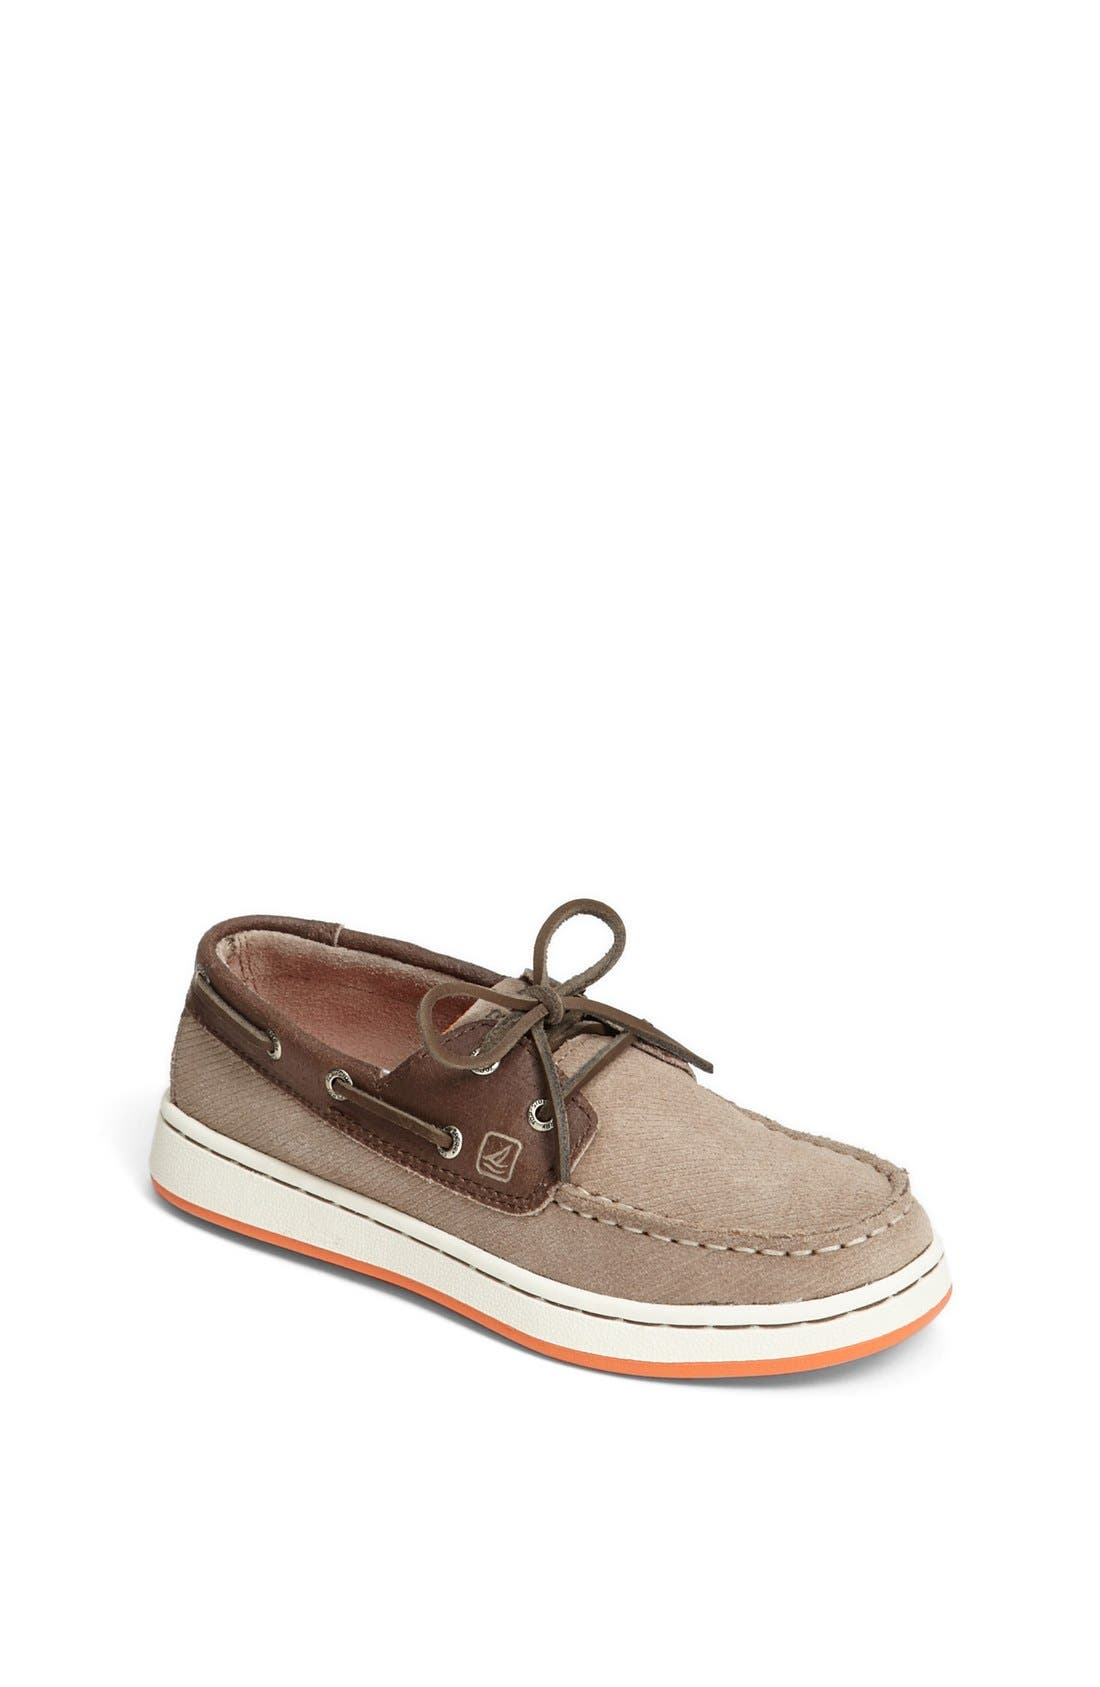 Main Image - Sperry Top-Sider® 'Cupsole' Loafer (Toddler, Little Kid & Big Kid)